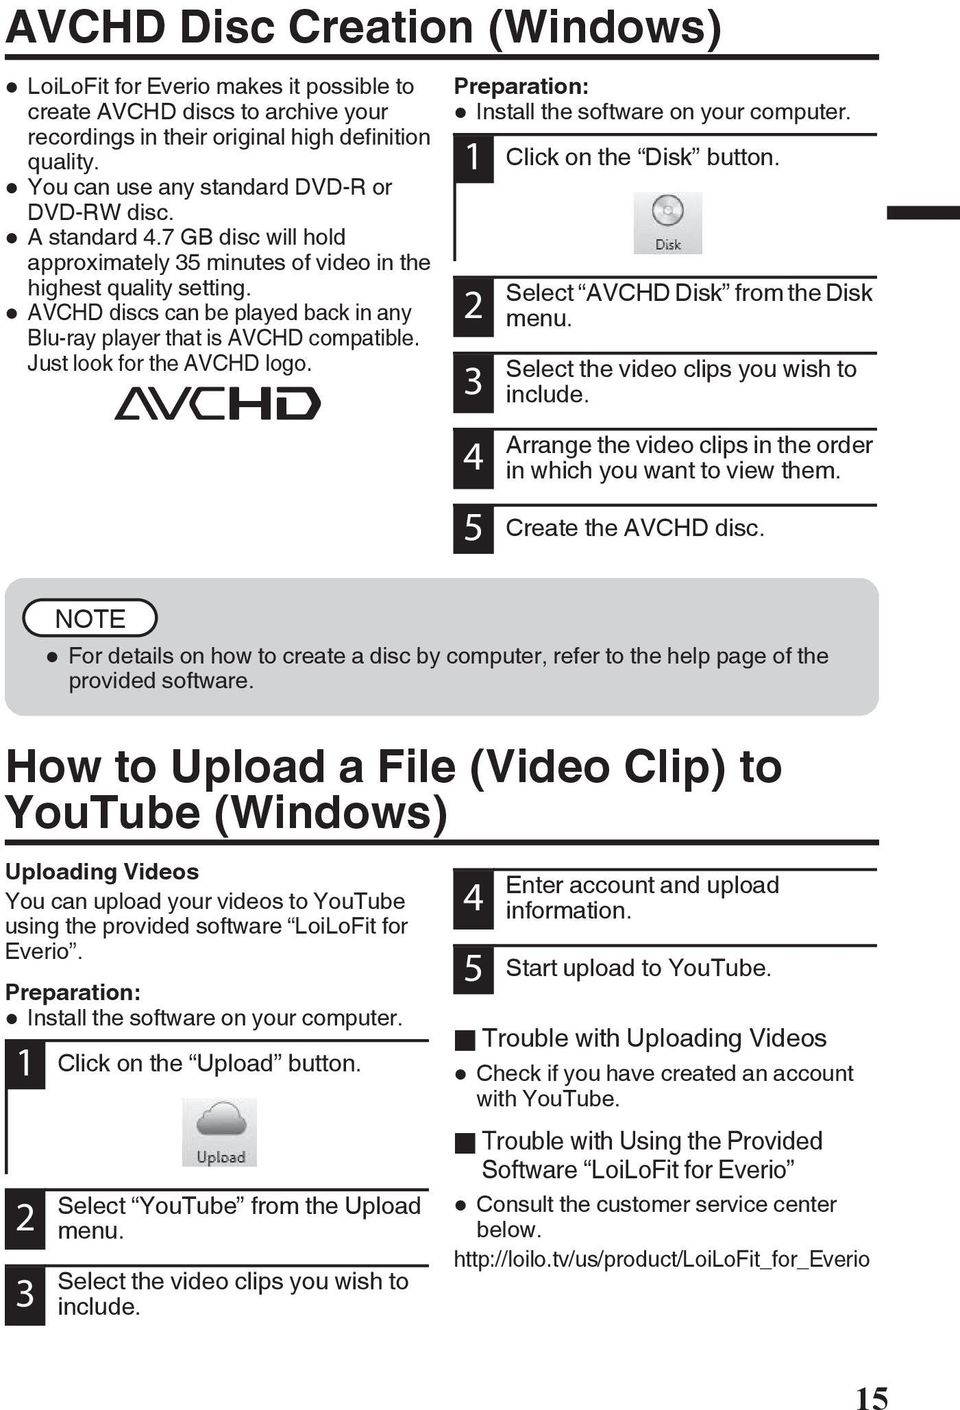 look for the AVCHD logo Preparation: 0 Install the software on your computer 1 Click on the Disk button 2 3 4 Select AVCHD Disk from the Disk menu Select the video clips you wish to include Arrange